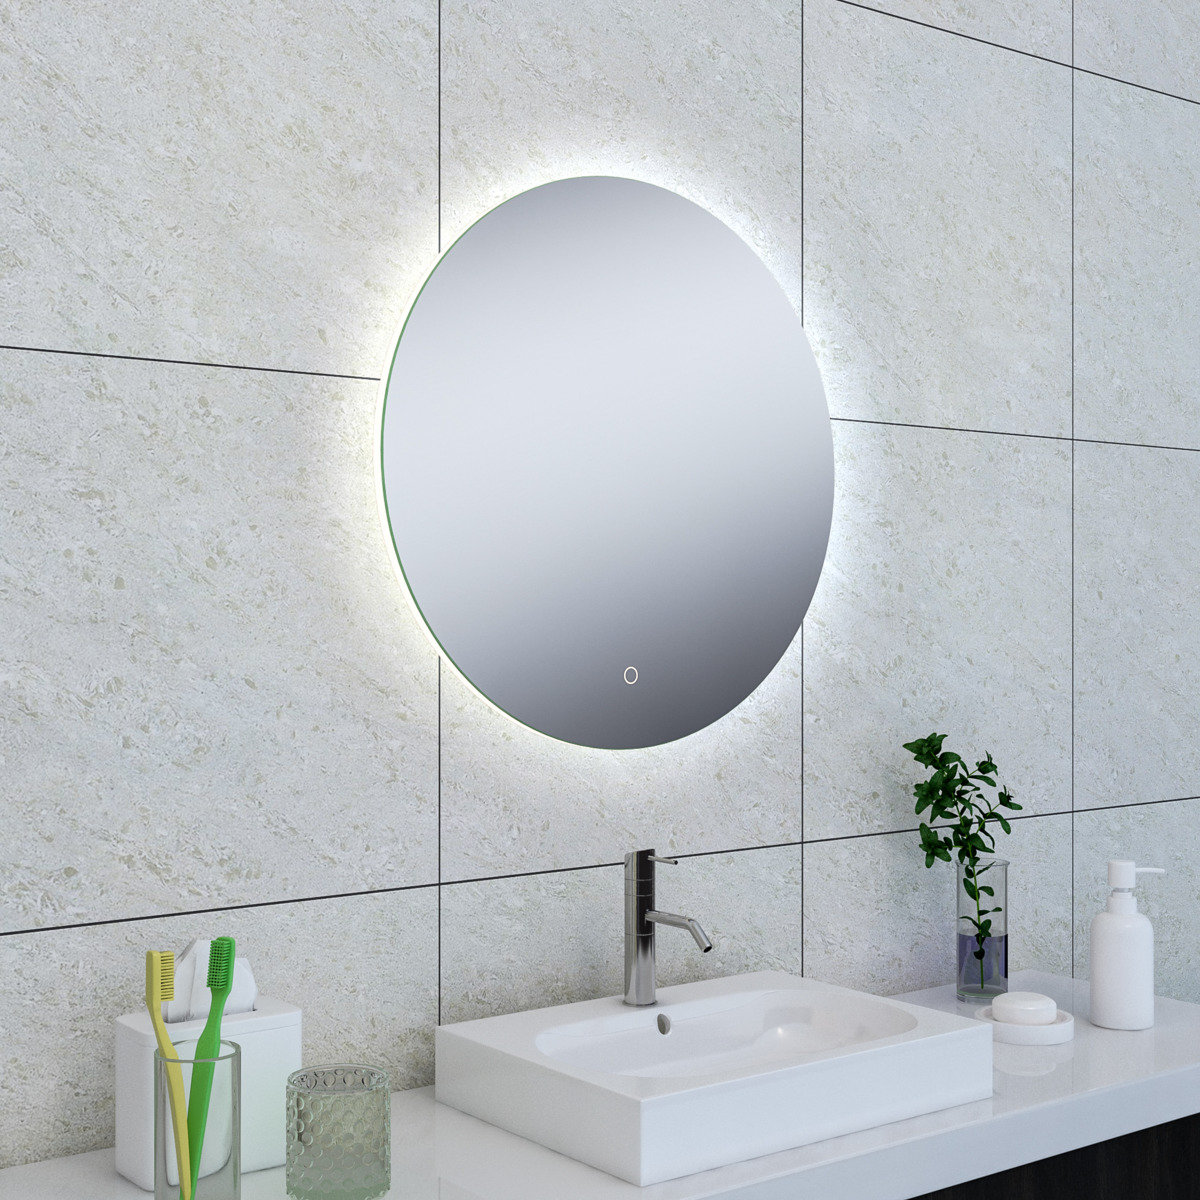 wiesbaden soul miroir avec lumi re led 60cm rond. Black Bedroom Furniture Sets. Home Design Ideas